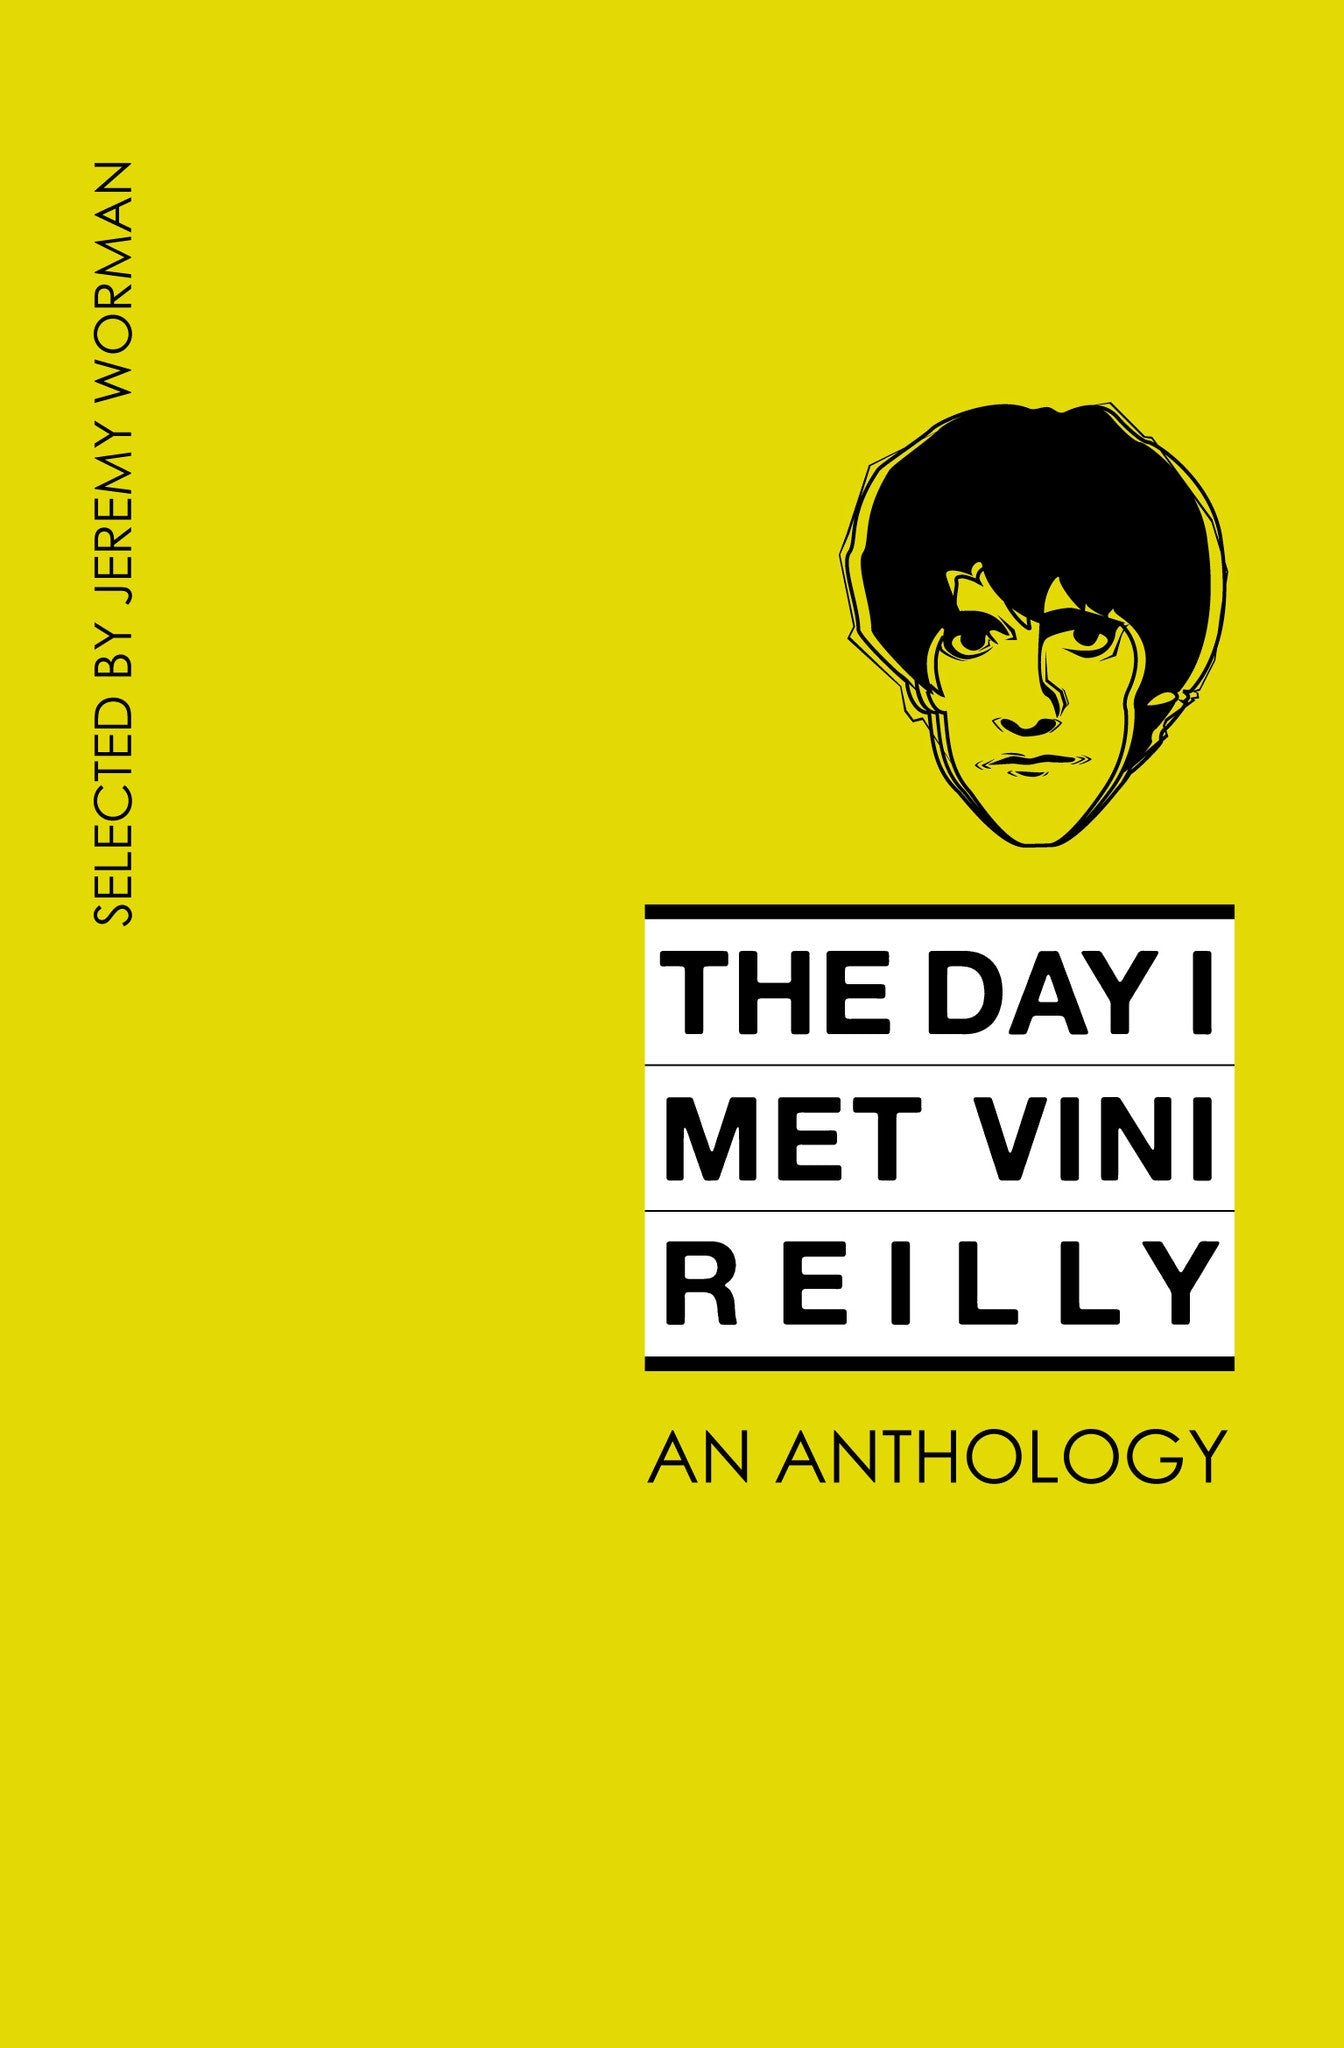 The Day I Met Vini Reilly